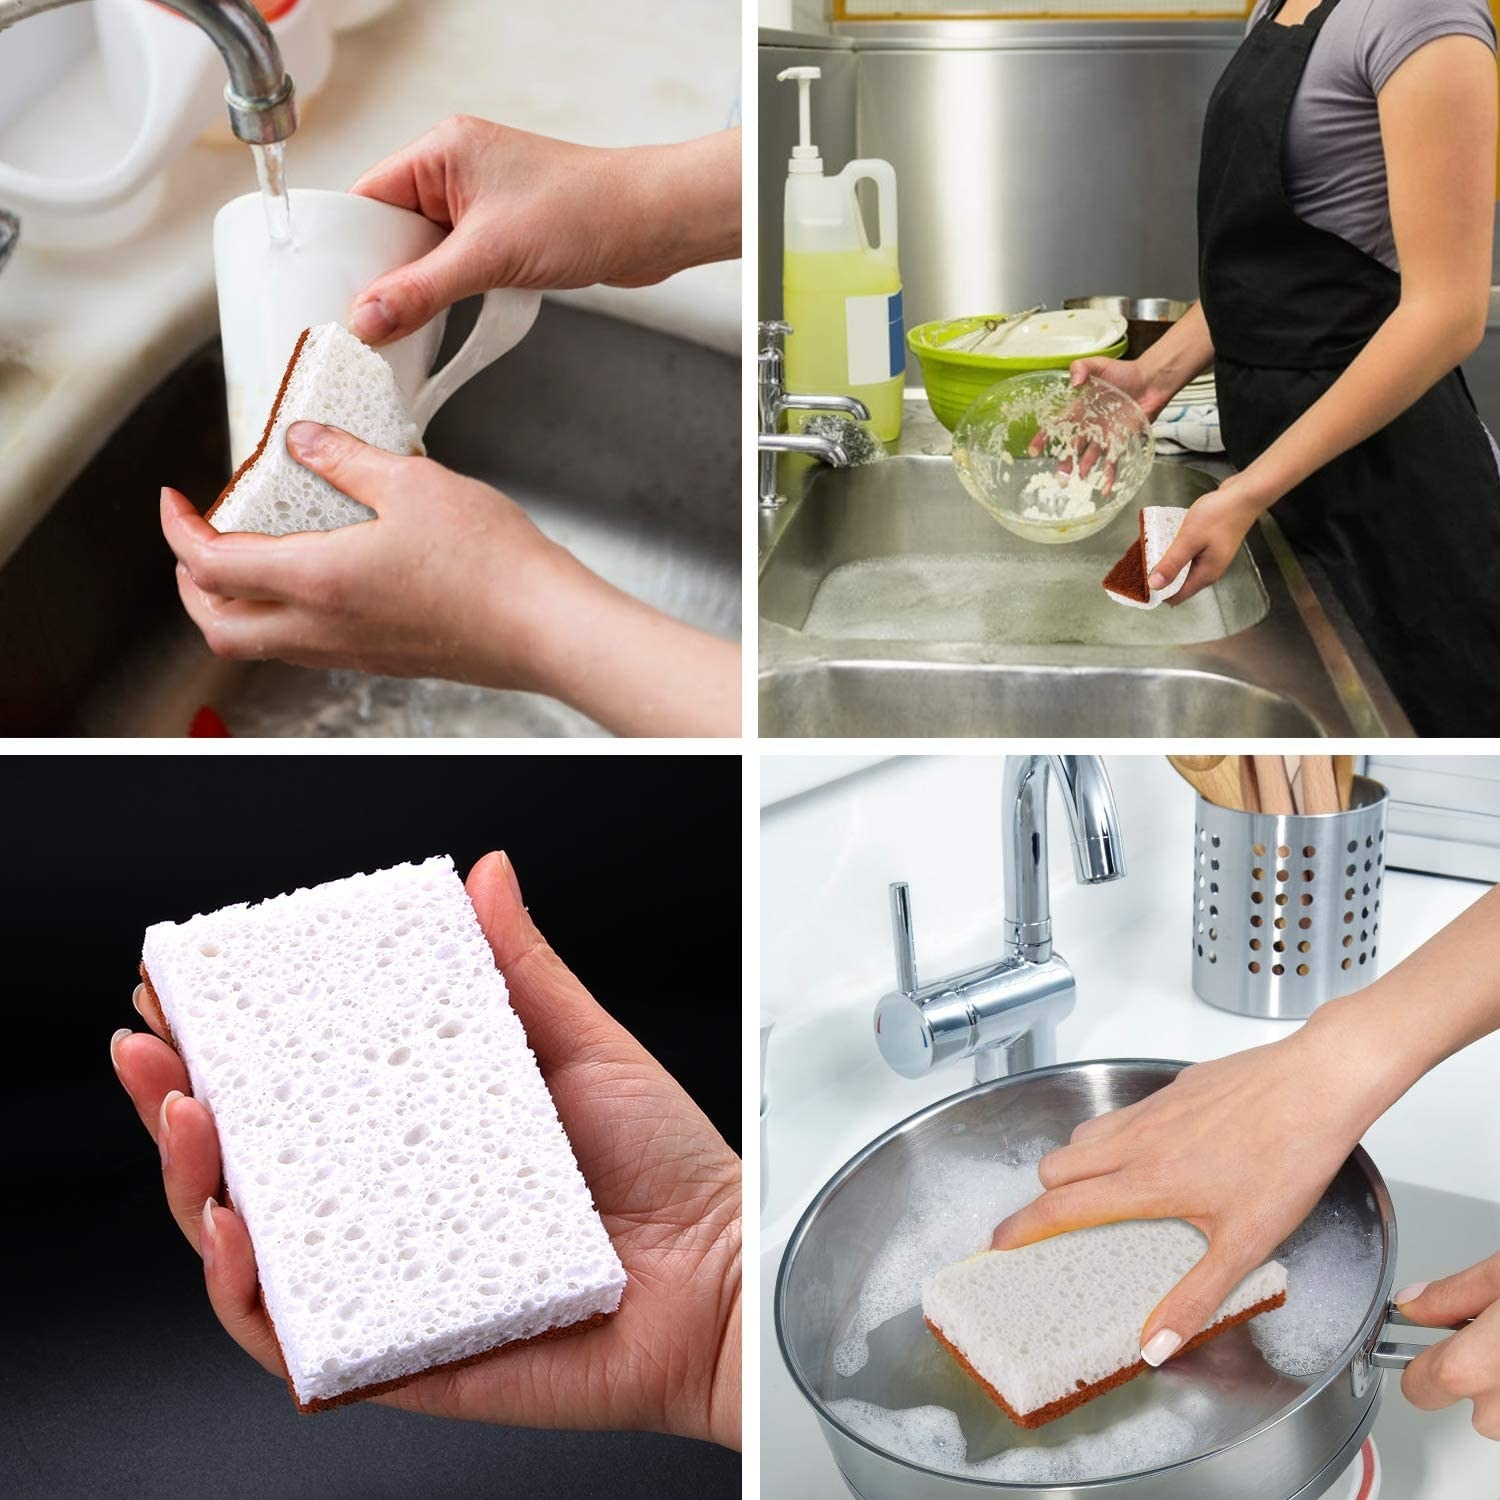 A person using the sponge on a mug, a dirty bowl, a pot, and holding it up to show the porousness of it